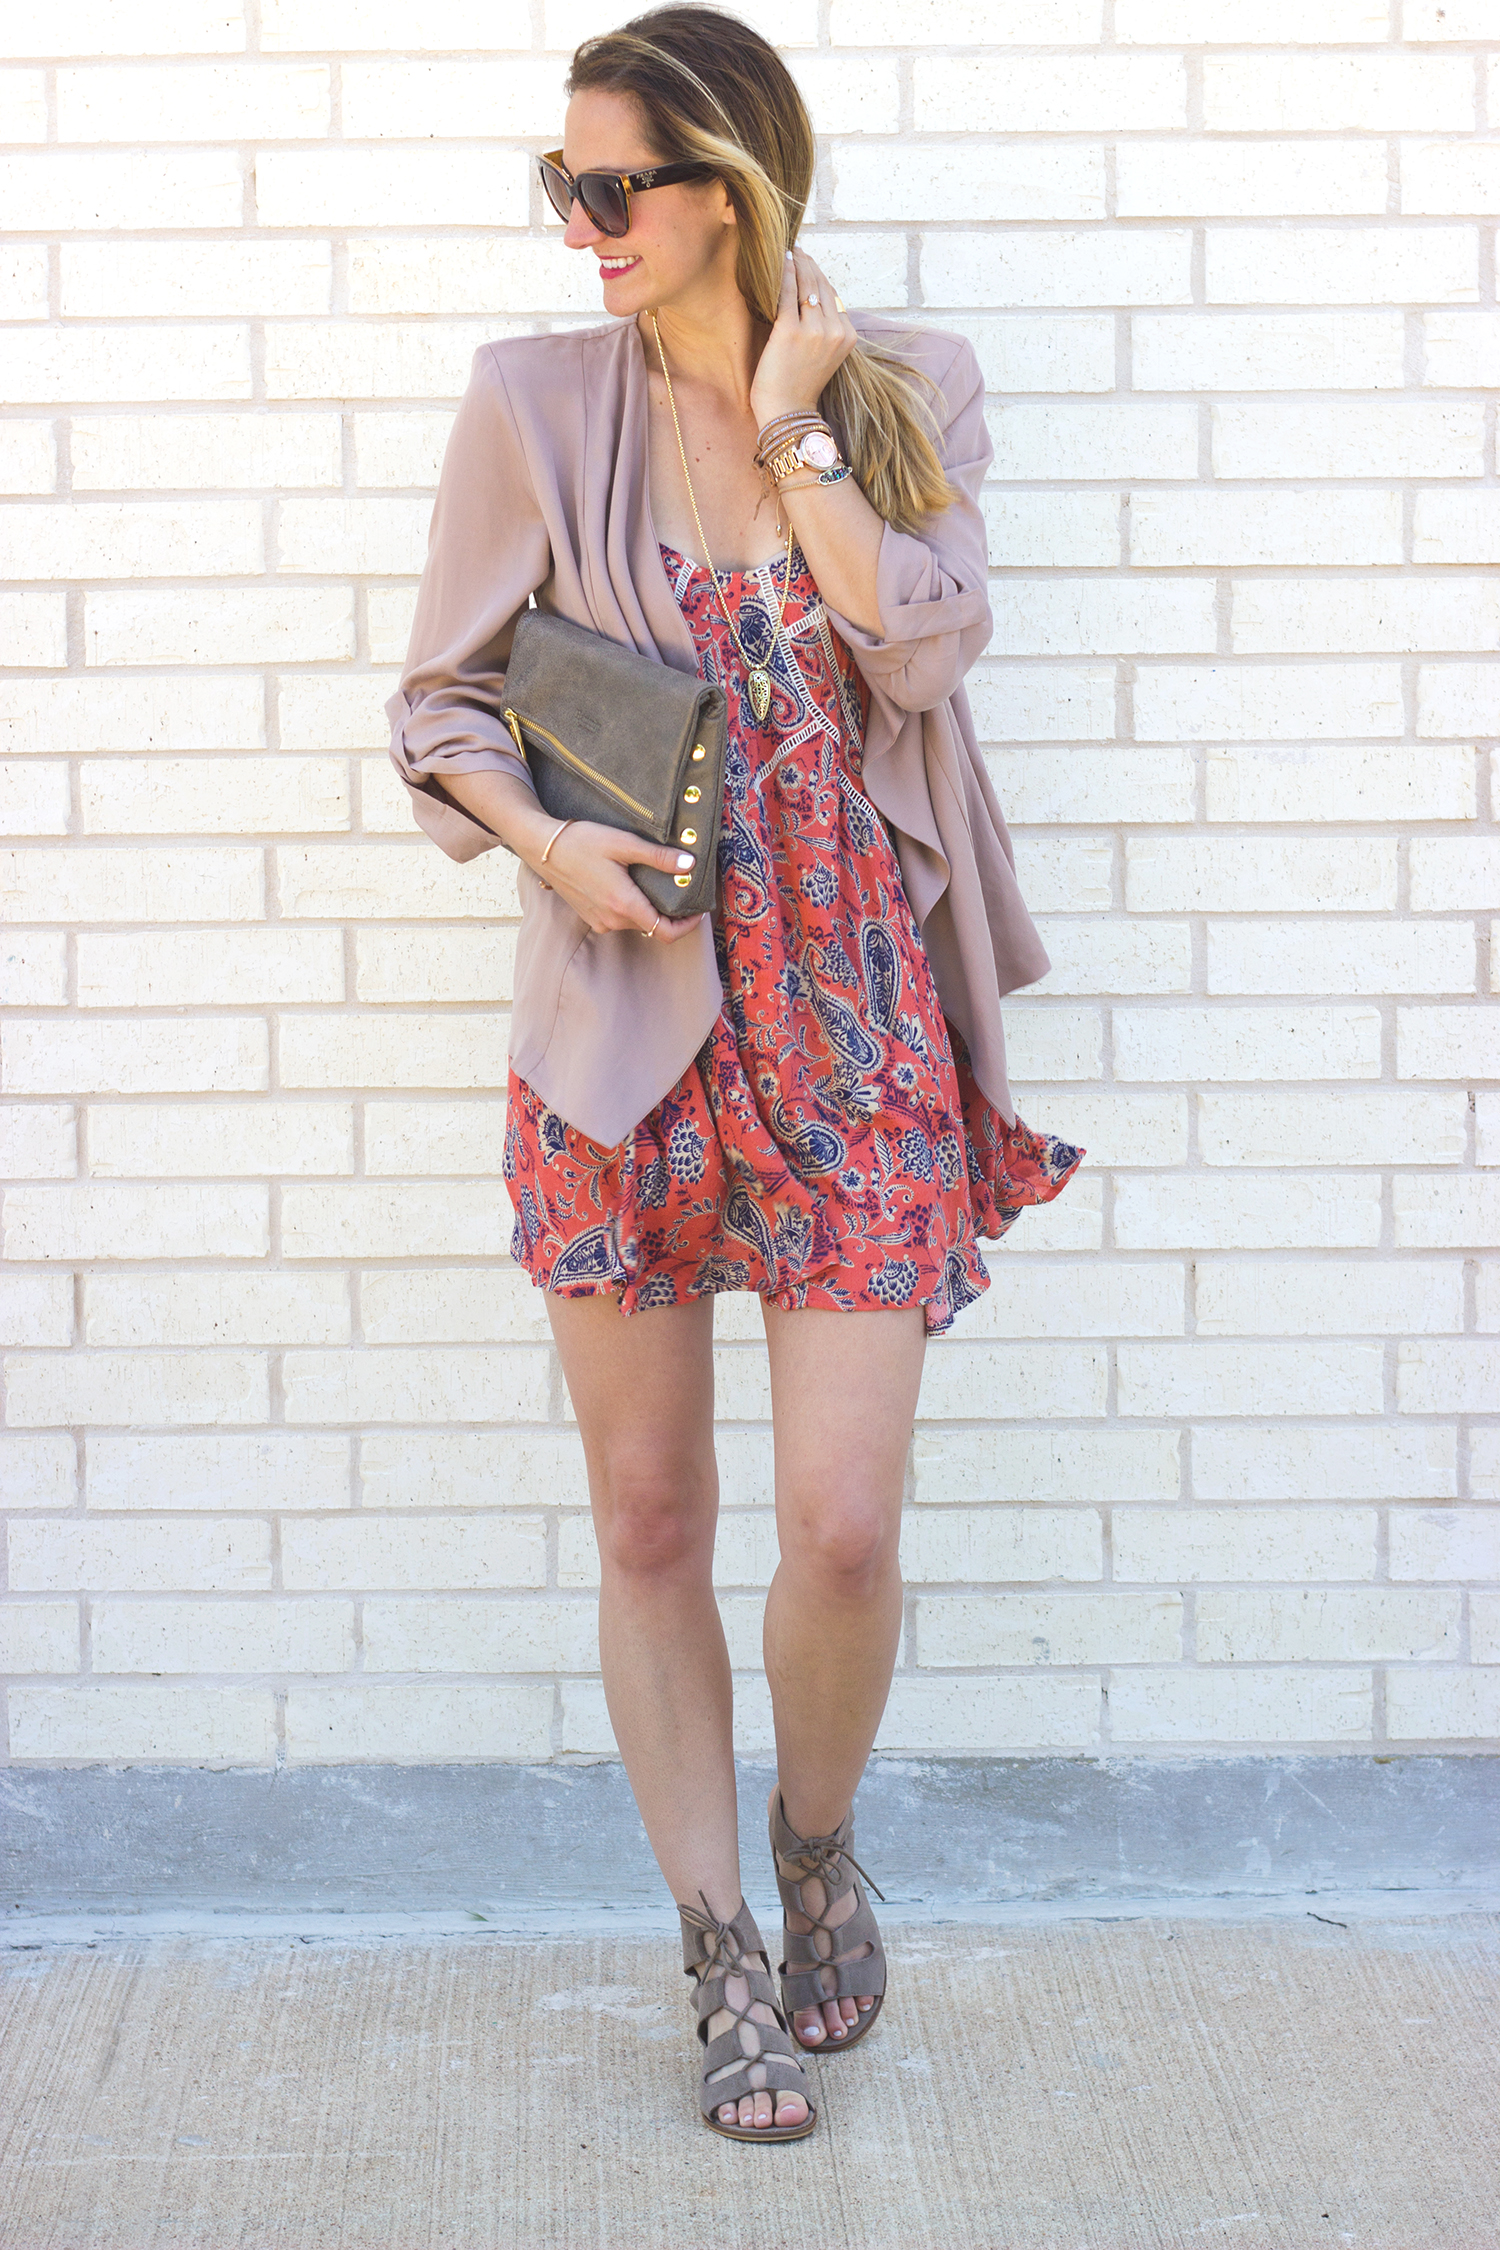 livvyland-blog-olivia-watson-austin-texas-fashion-blogger-razorback-shift-dress-paisley-printed-hammitt-la-vip-clutch-blush-draped-front-jacket-blazer-2